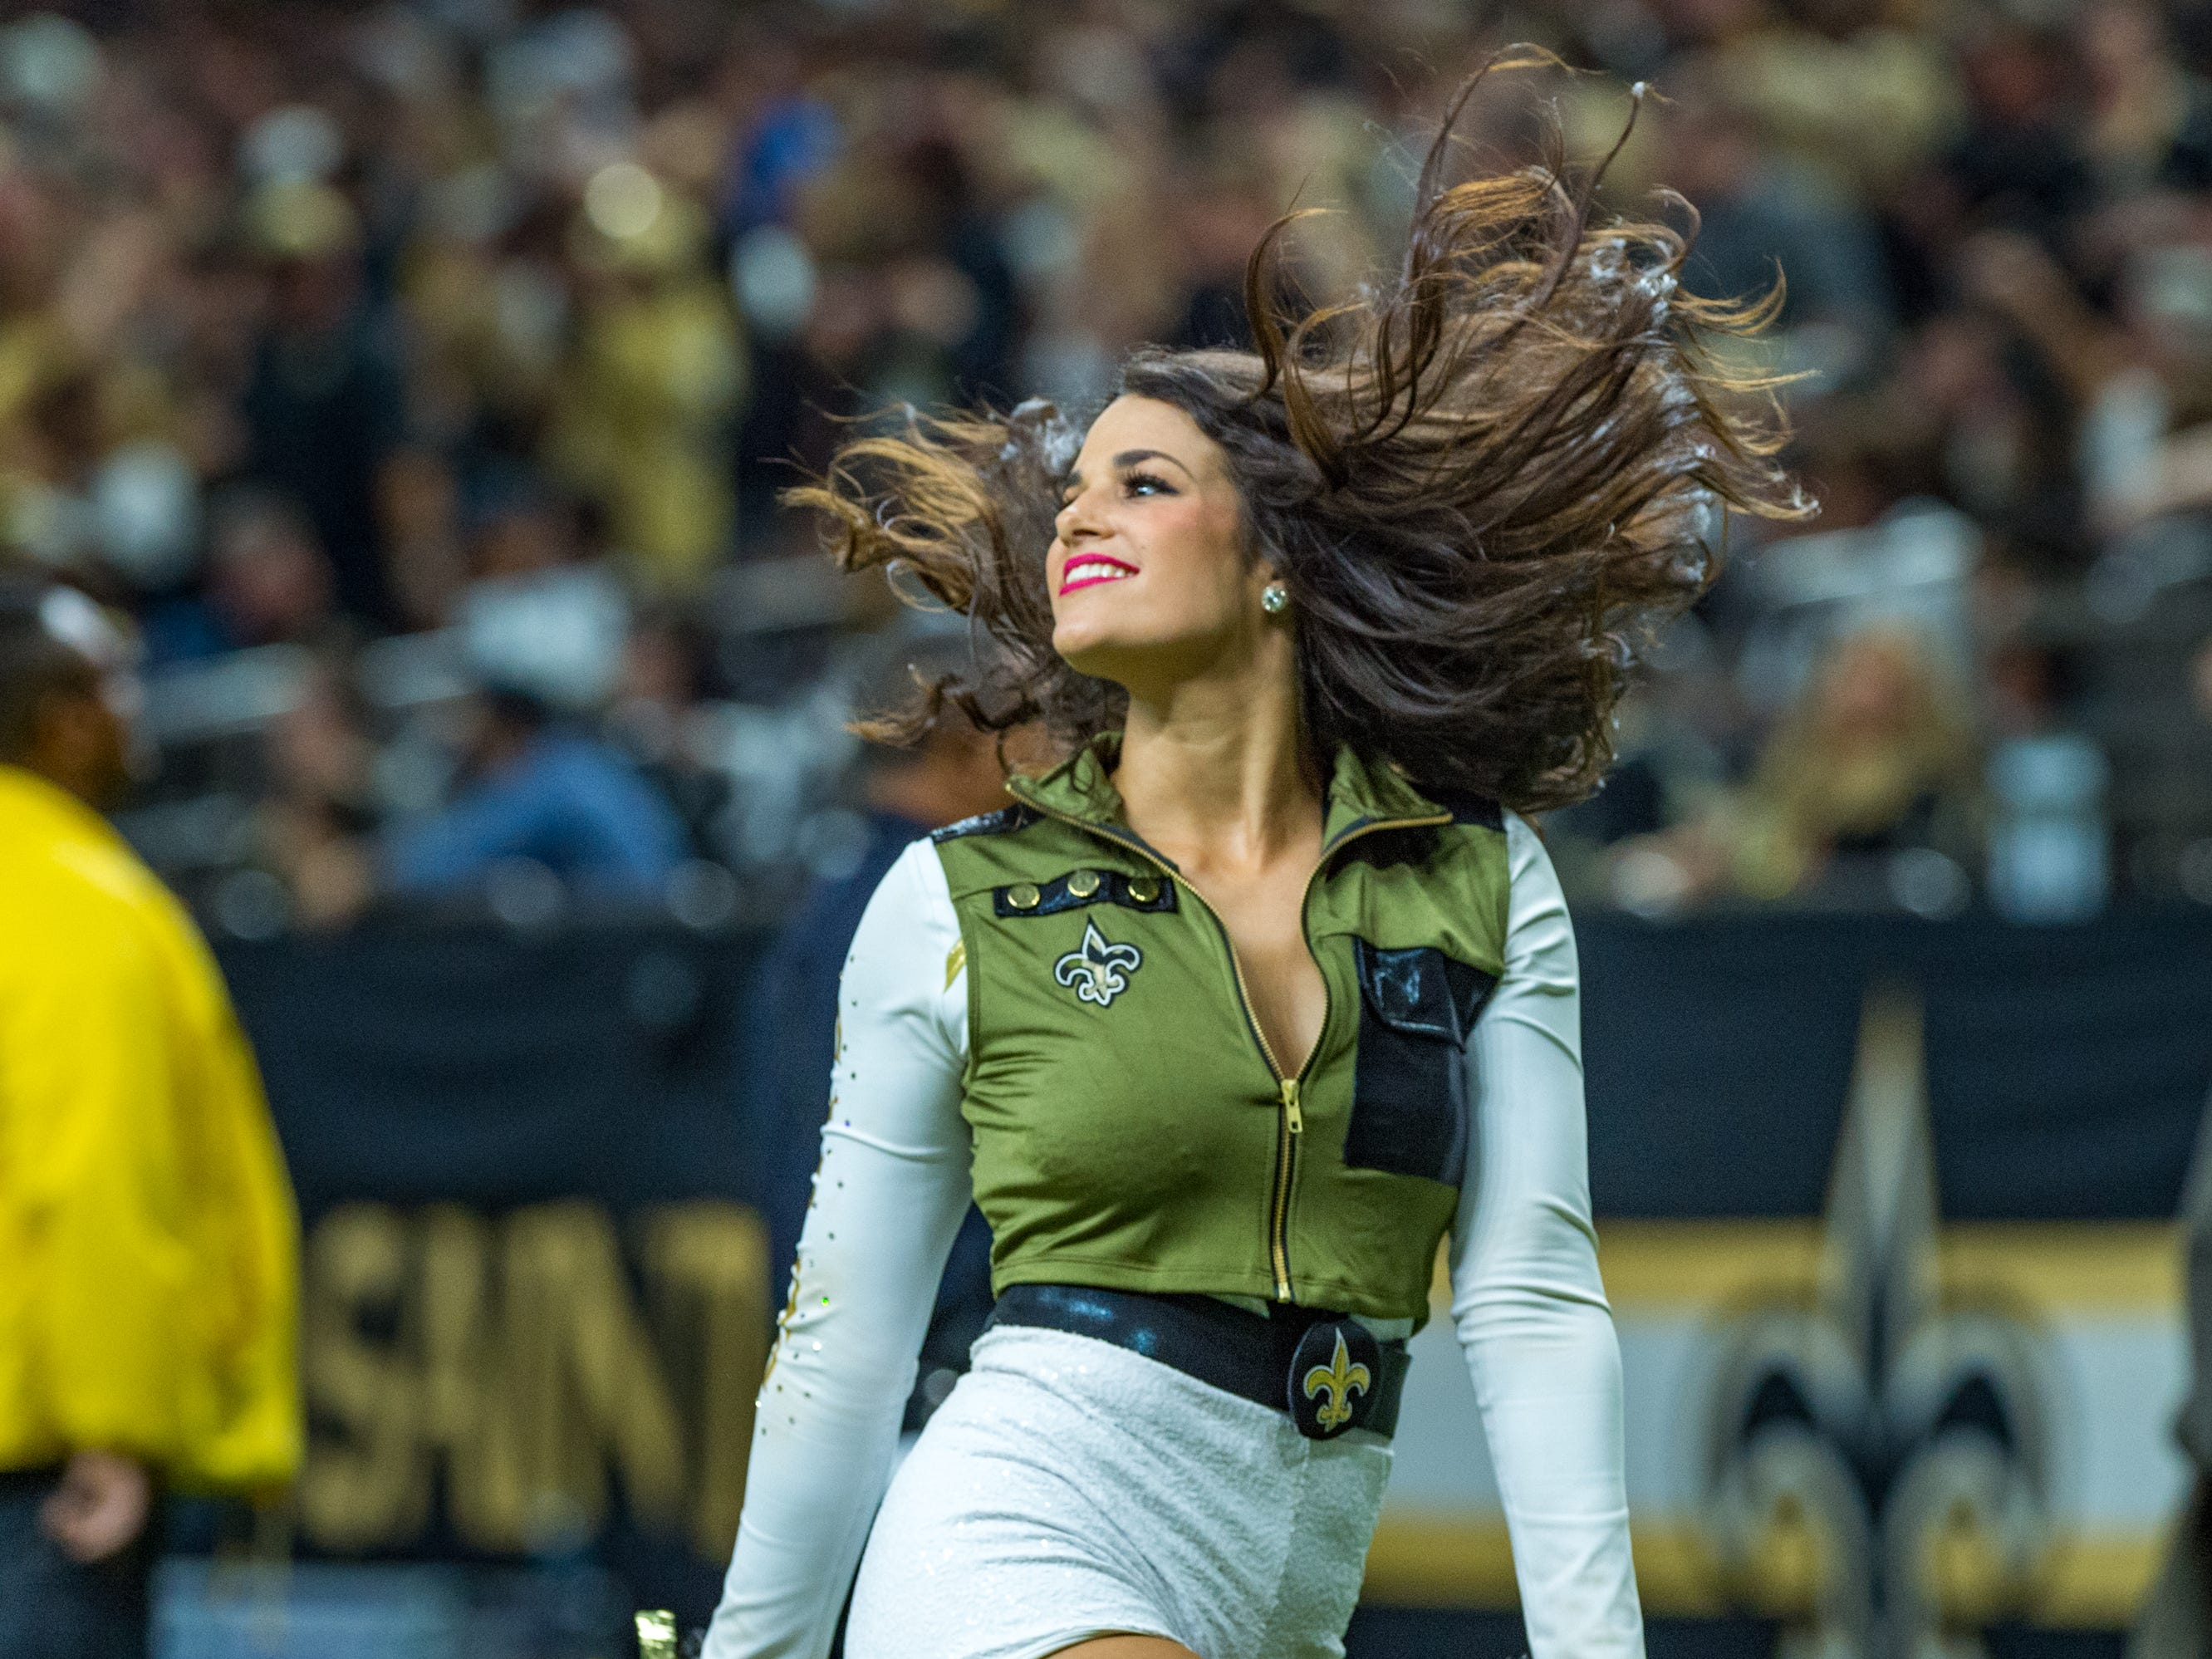 The Saintsations perform during the NFL football game between the New Orleans Saints and the Los Angeles Rams on Sunday, Nov. 4, 2018.